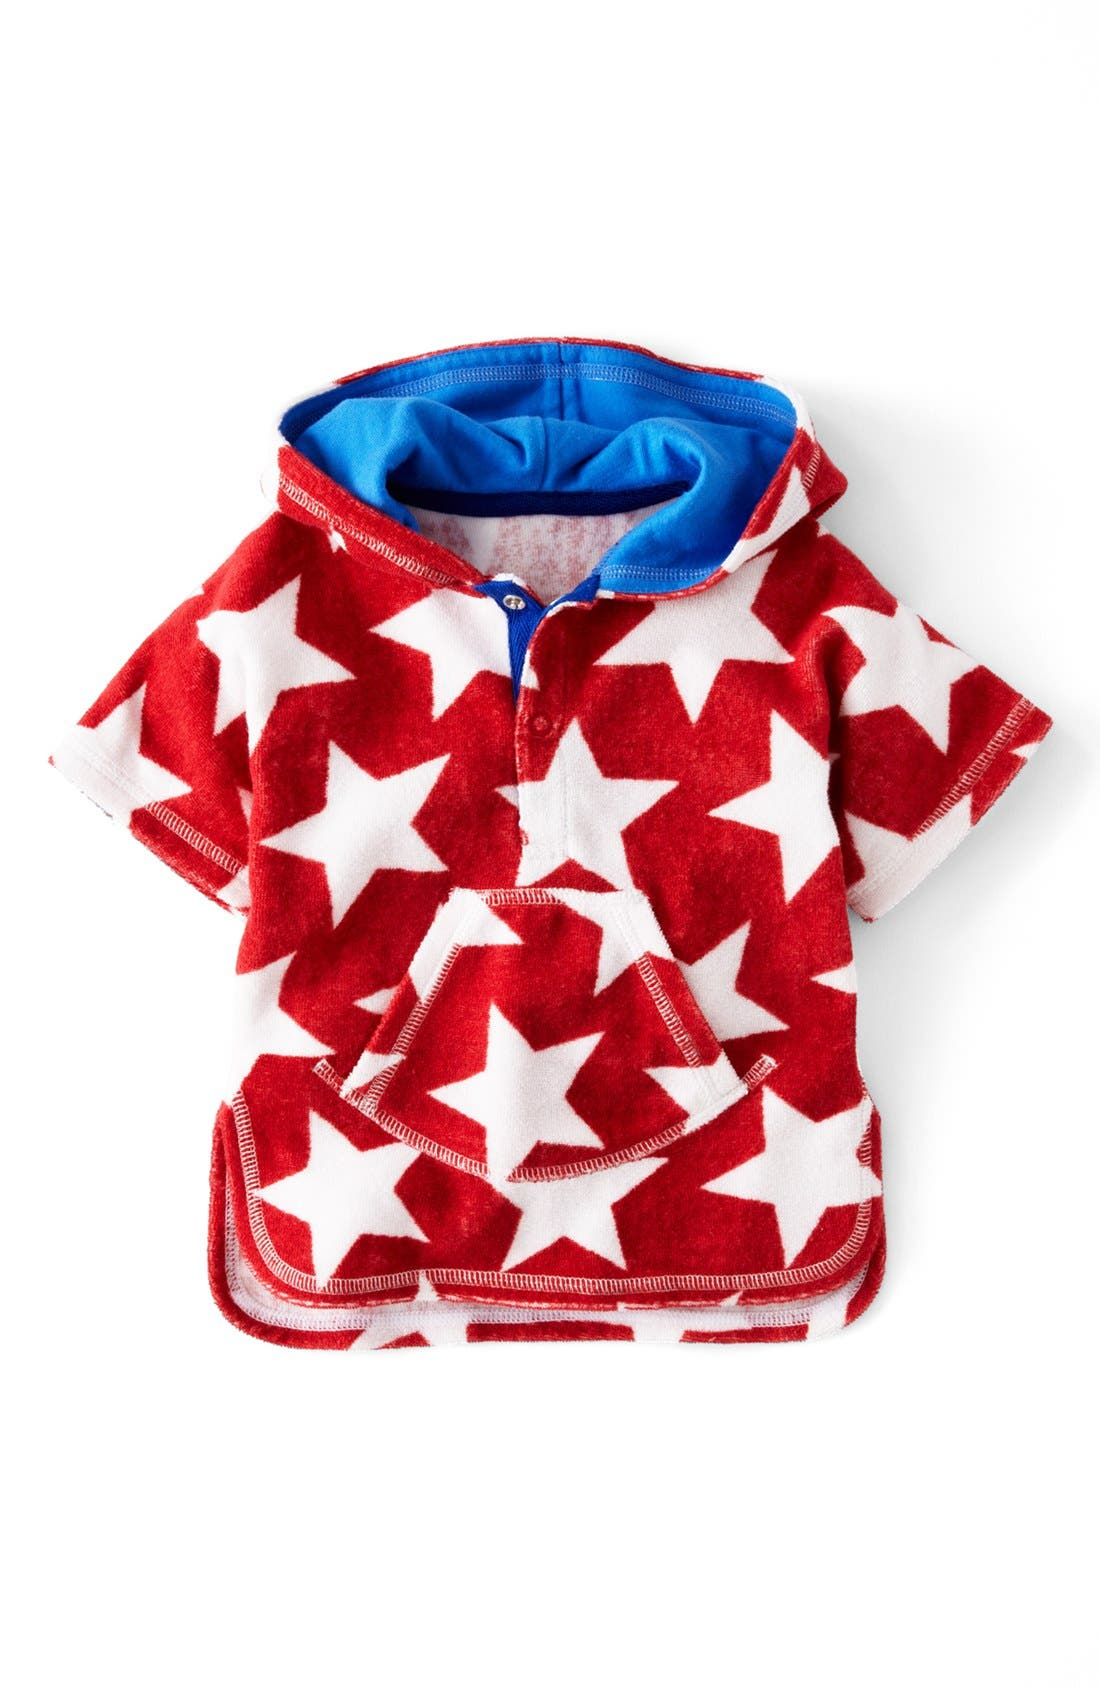 Alternate Image 1 Selected - Mini Boden 'Towelling' Poncho (Baby)